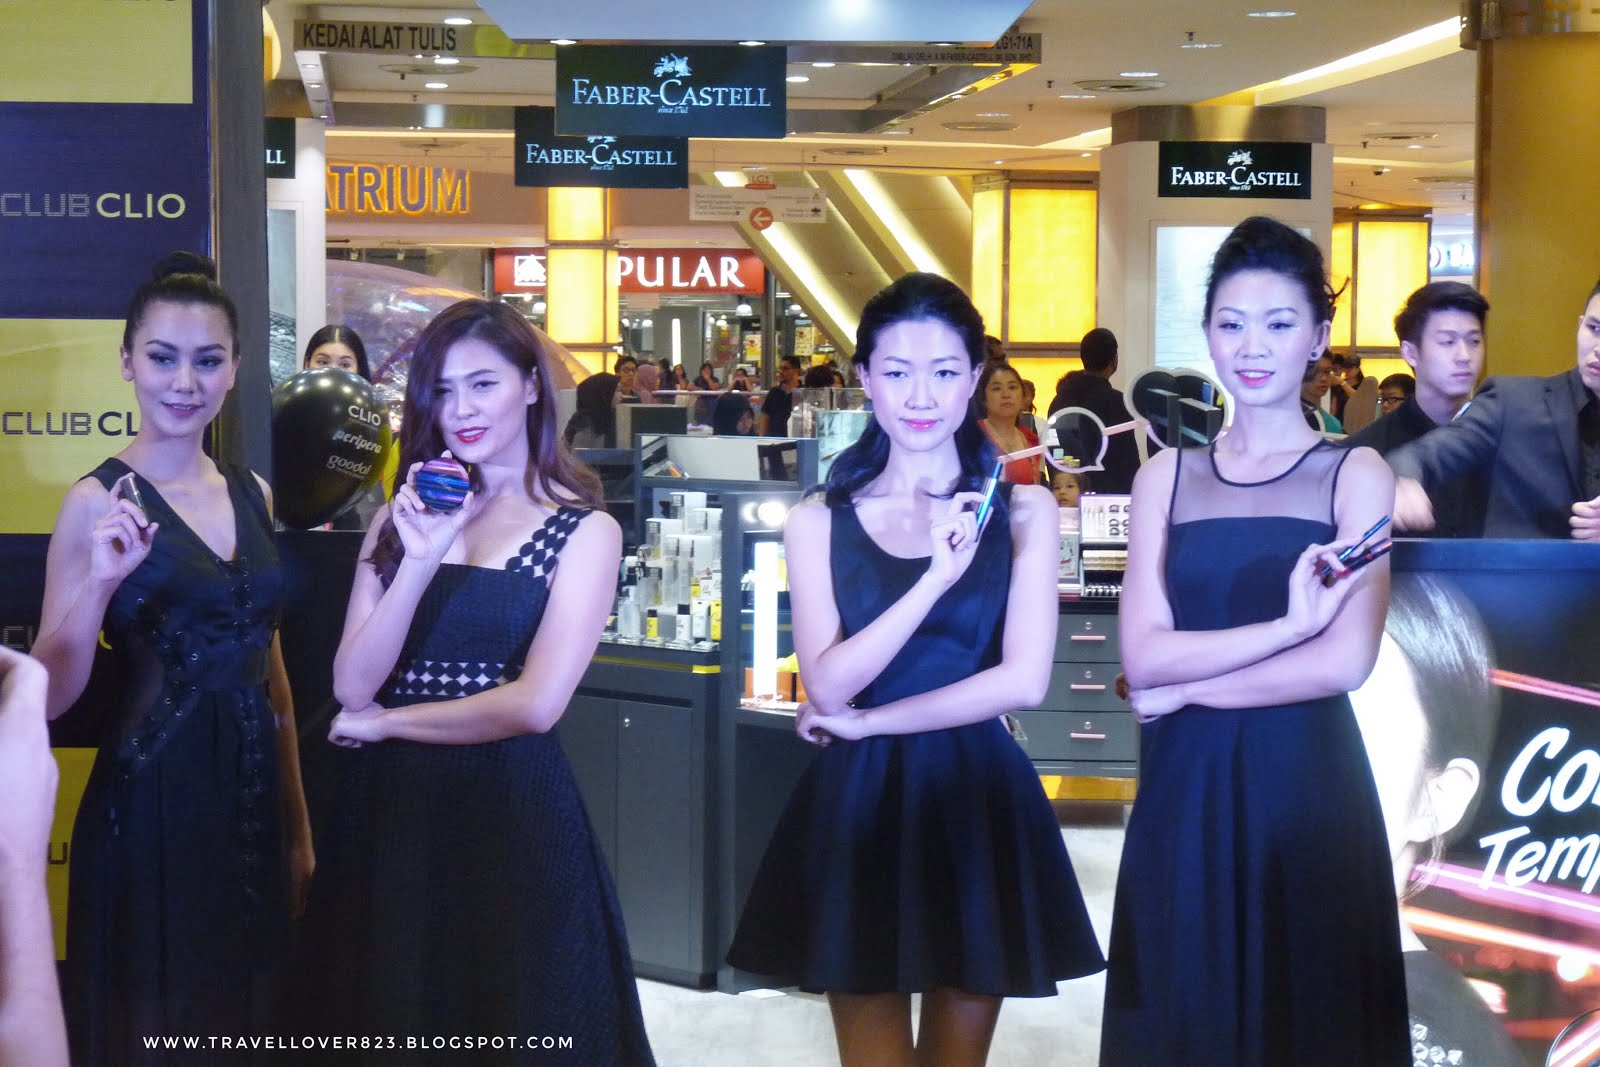 Club Clio Grand Opening @ Sunway Pyramid - I'm Shin May | The Travel